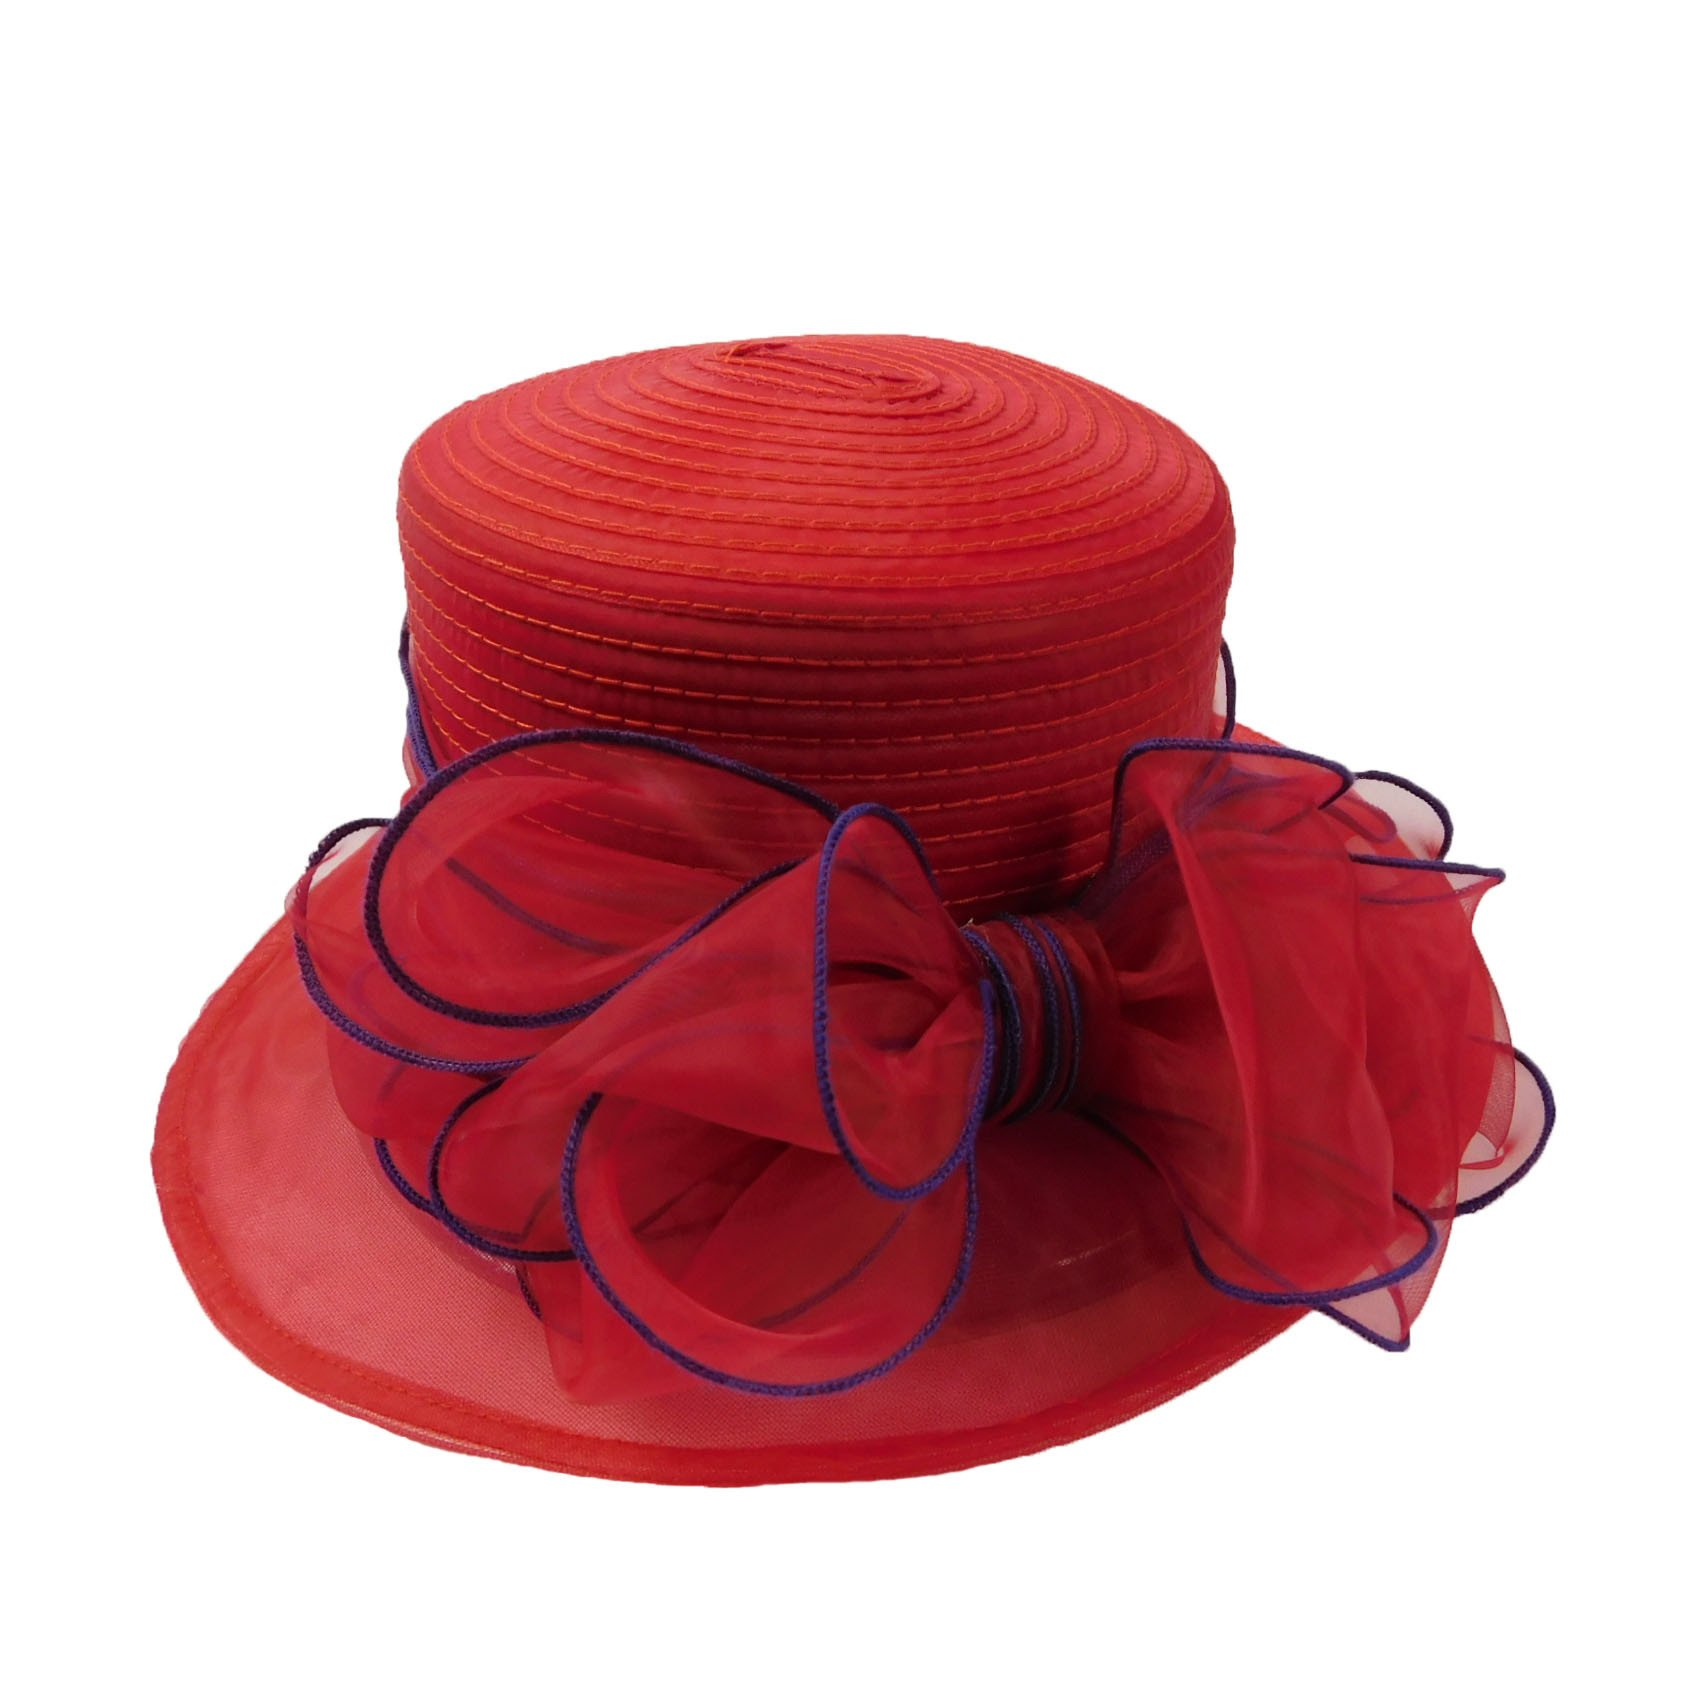 1704x1704 Red Hat Society Hats Setartrading Hats